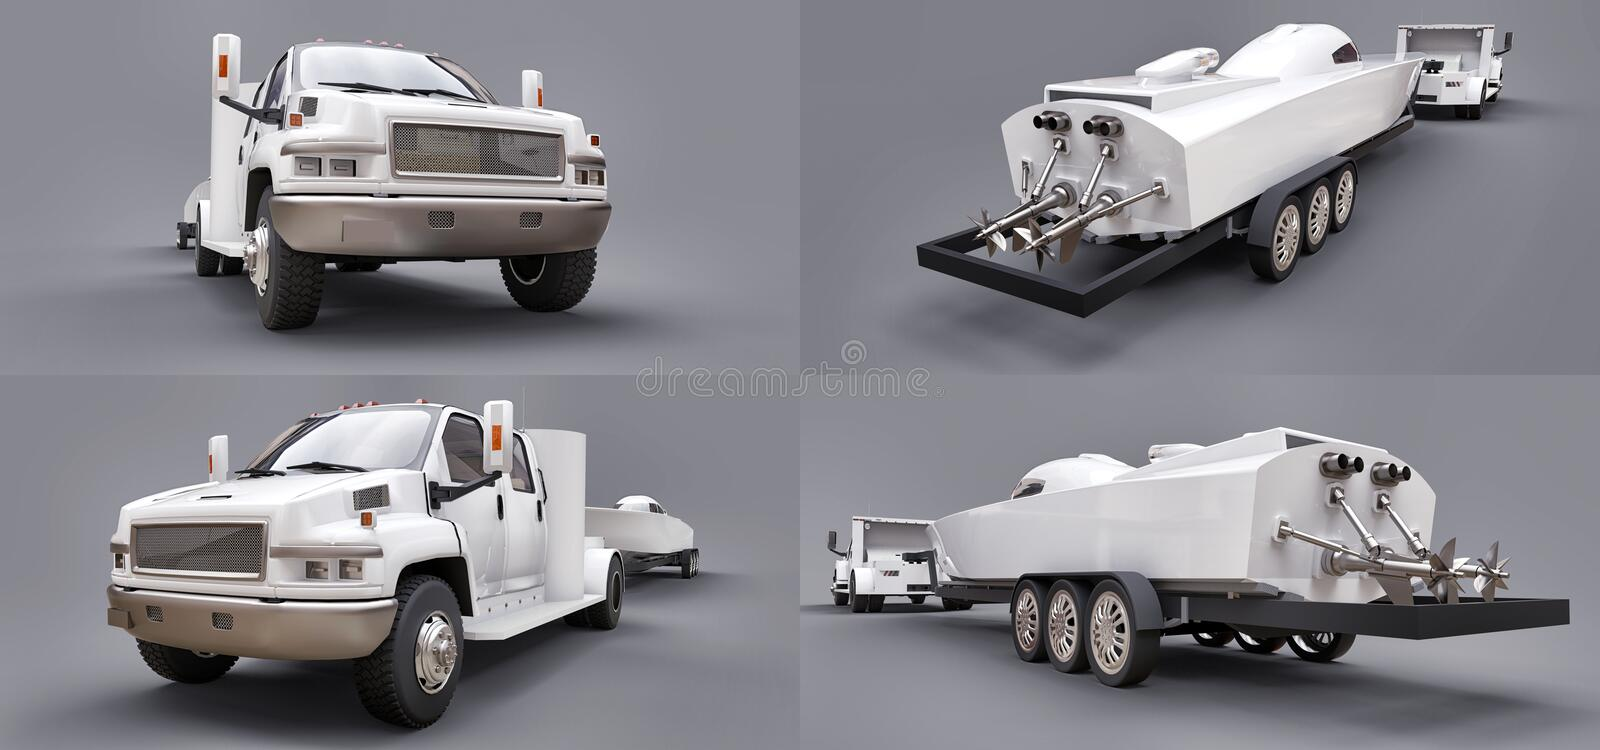 Set white truck with a trailer for transporting a racing boat on a grey background. 3d rendering. royalty free illustration